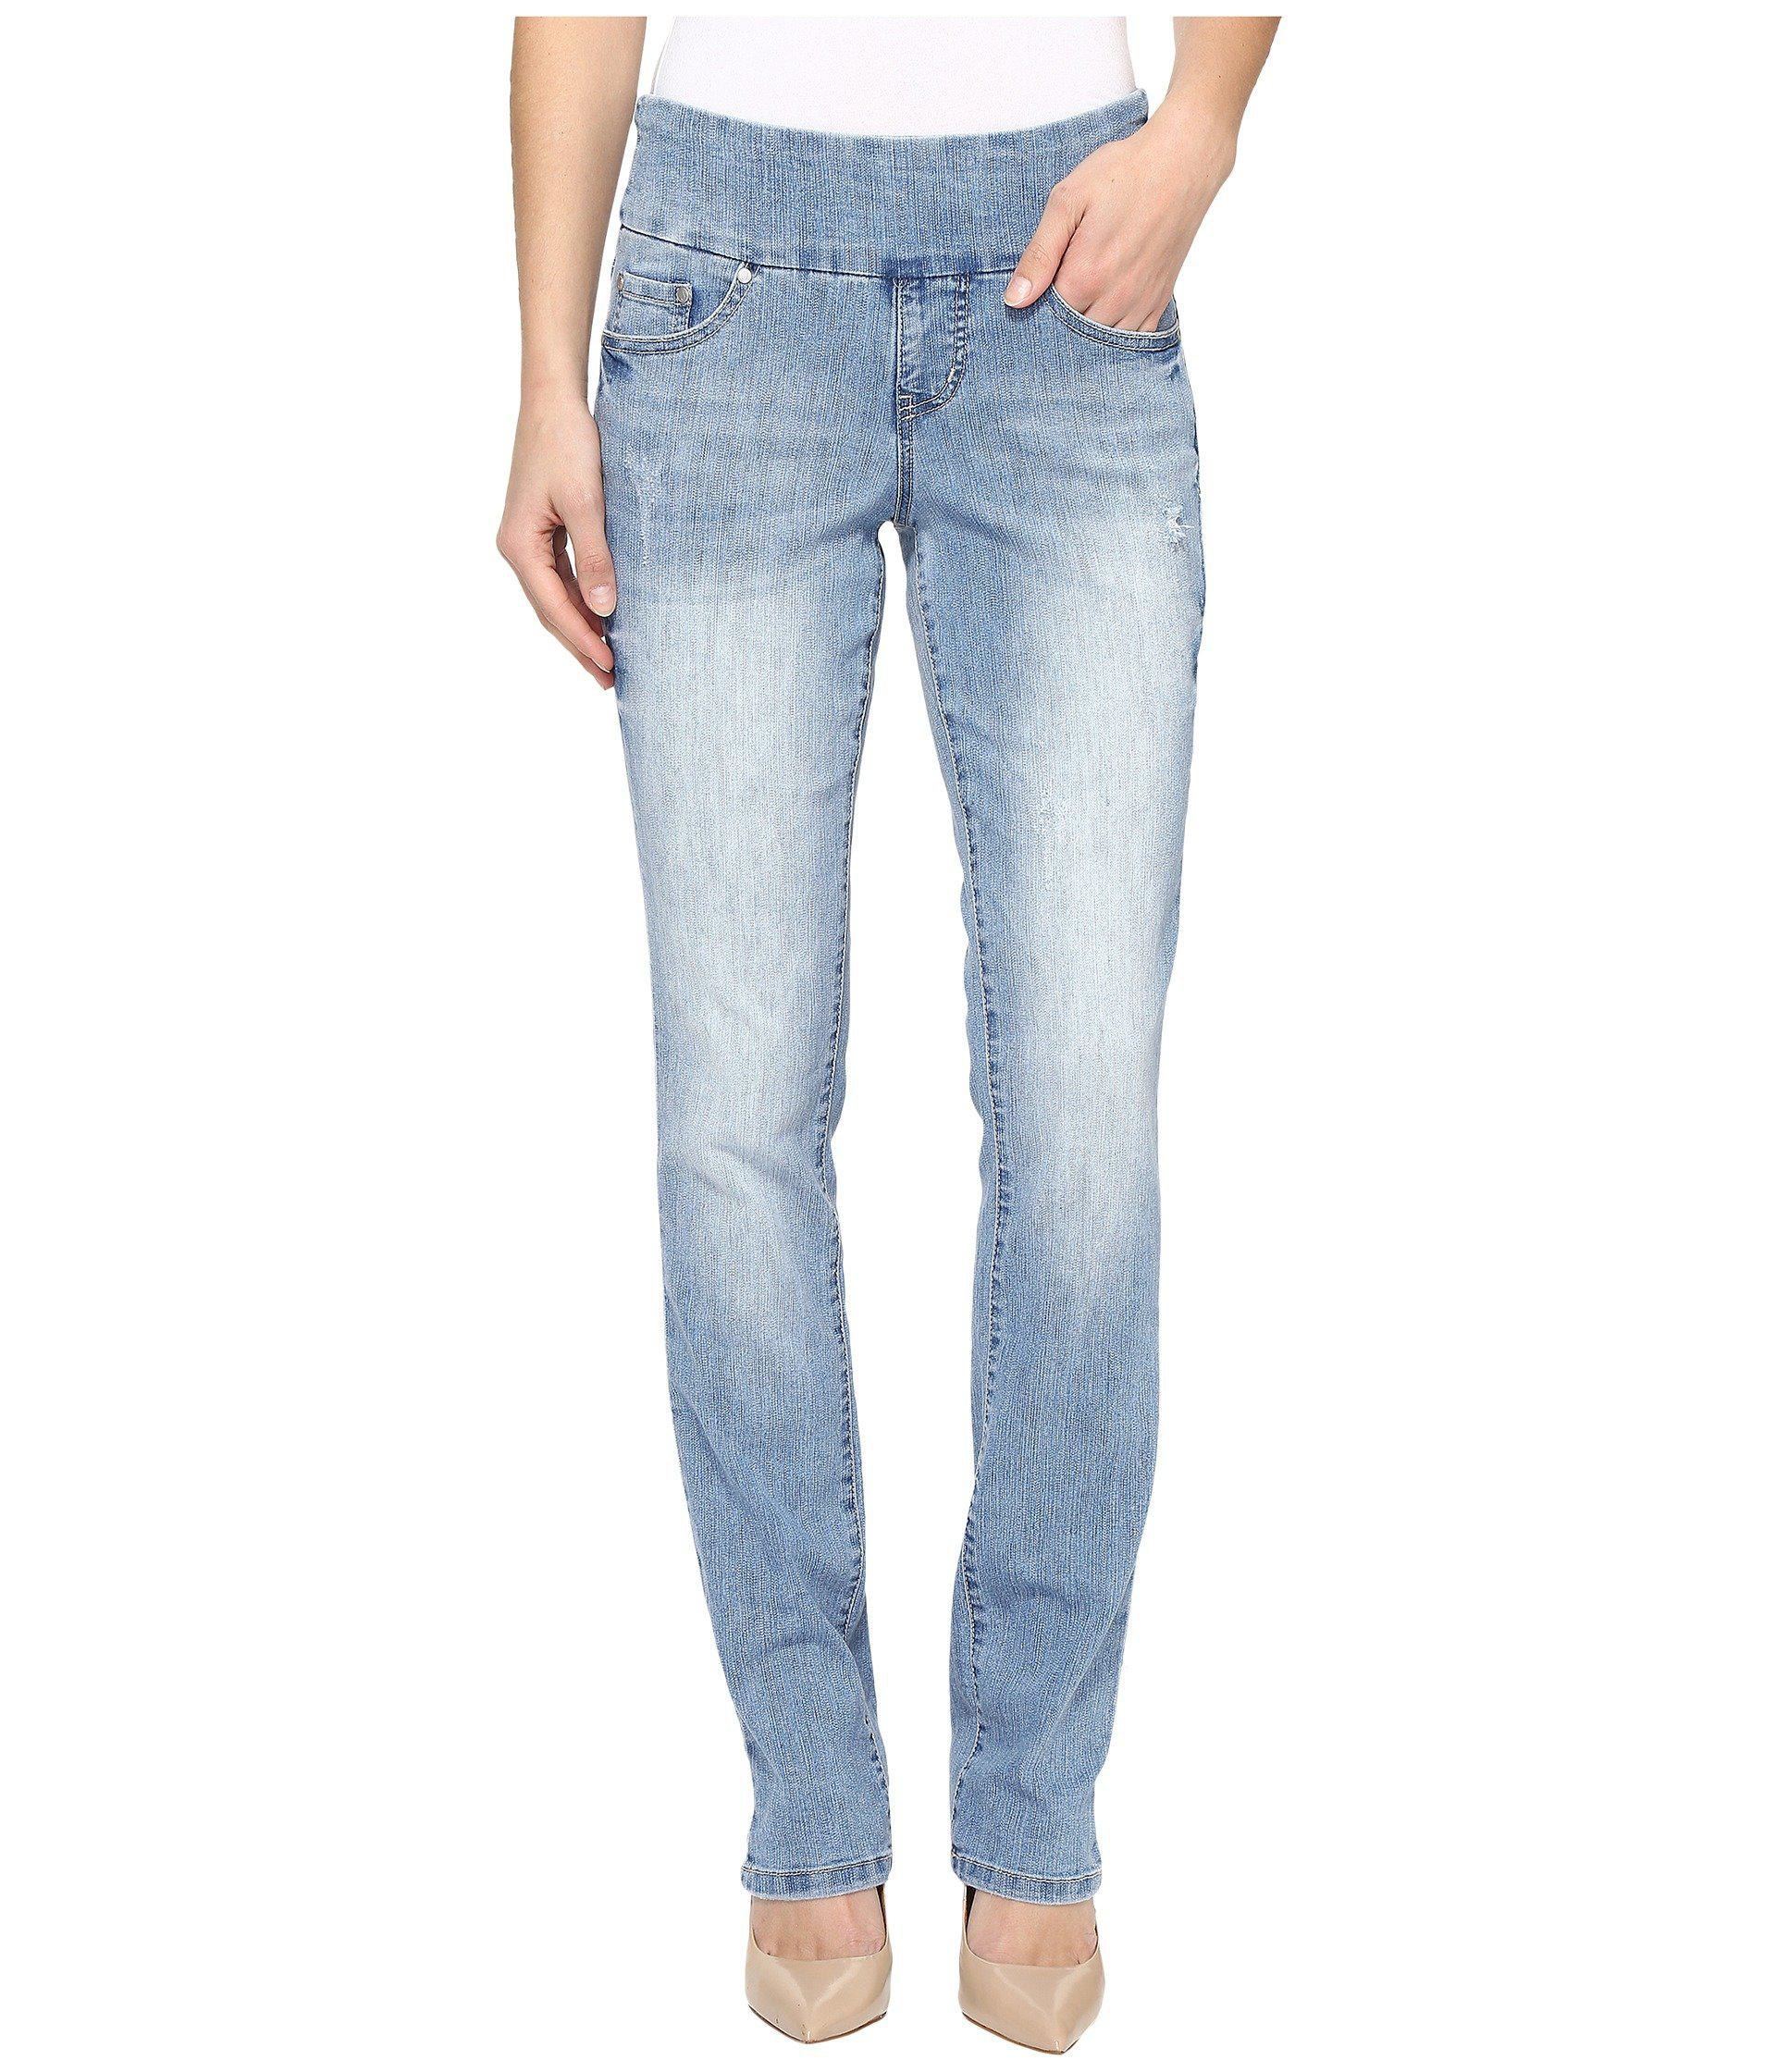 pin of that comforter way five are pocket pair waist p comfort comes the jeans a in